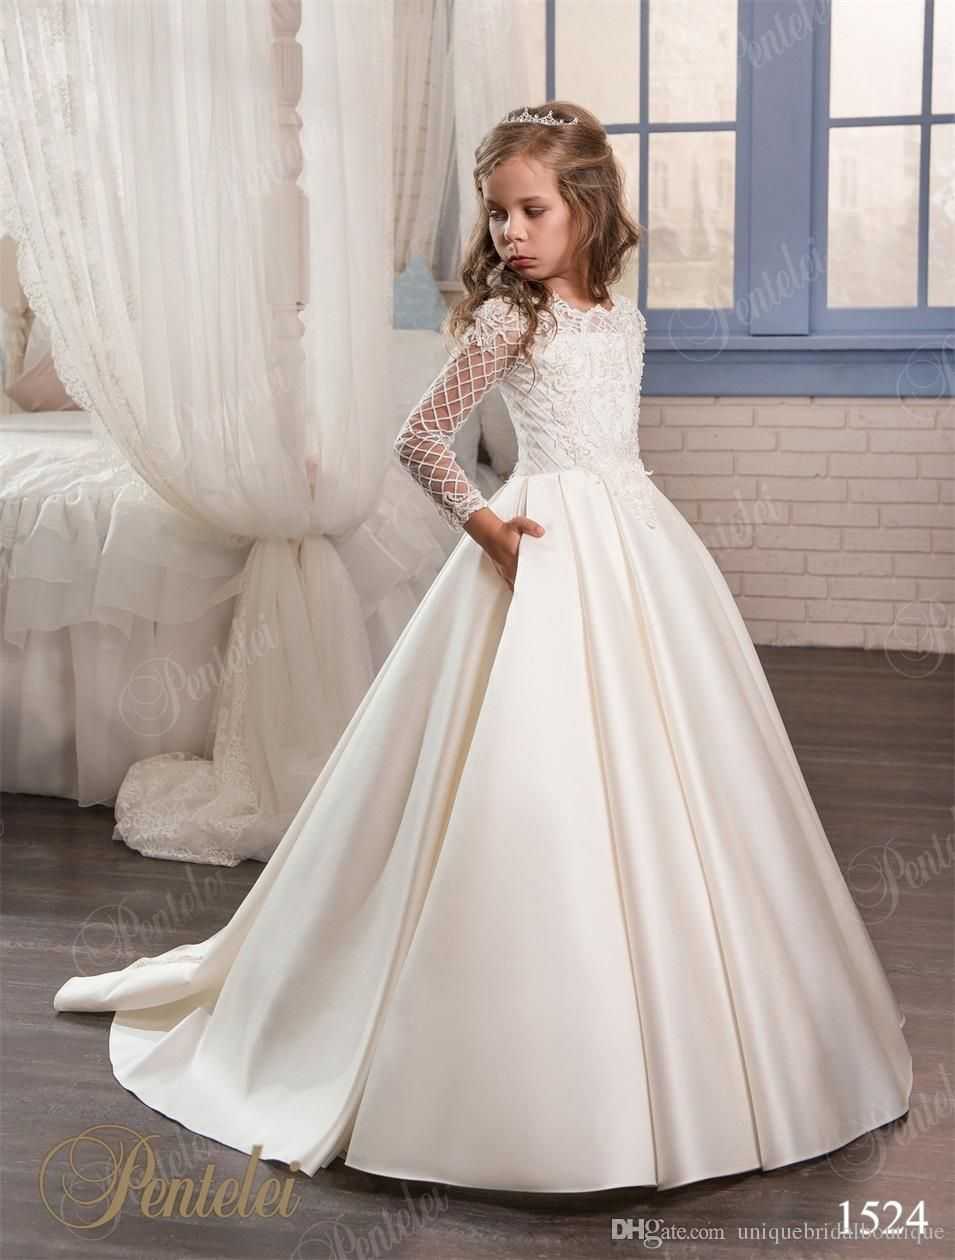 Wedding dresses for little girls pentelei cheap with long